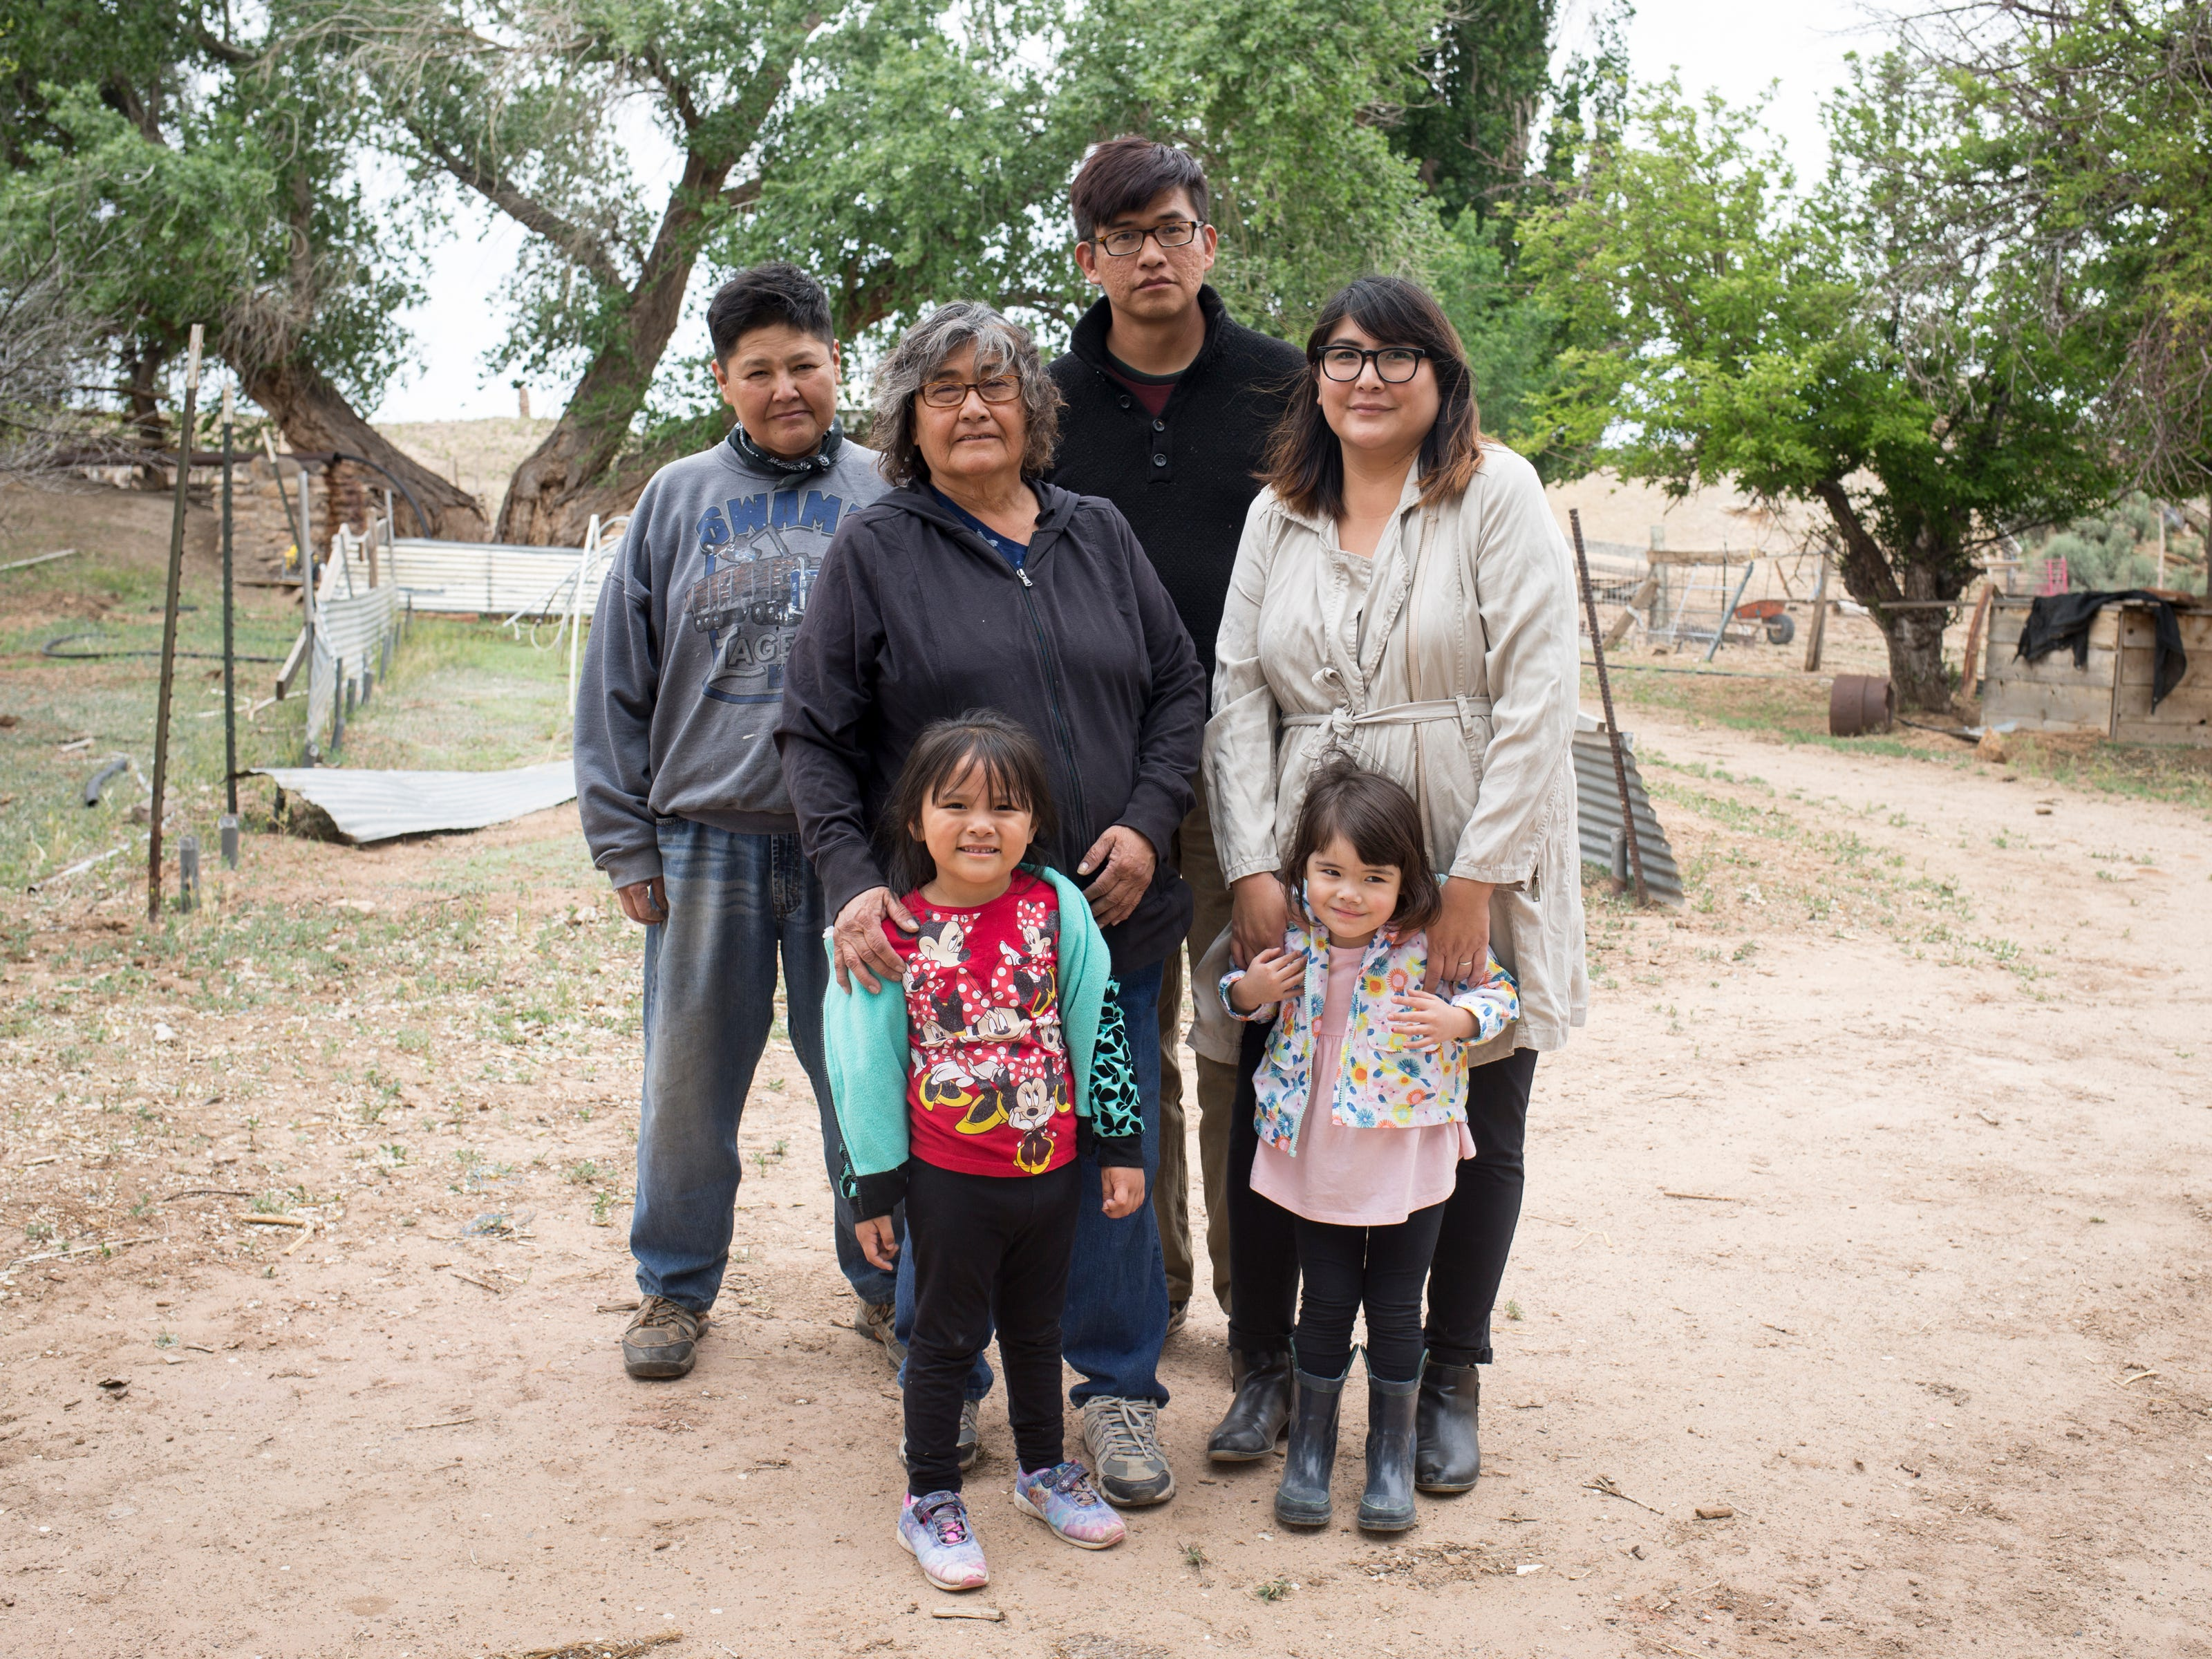 Clockwise from left: Terry Oliver (granddaughter), Veronica Walter (daughter), Trent Nez (grandson), Theodosia Ott (granddaughter), Oona Ott (great-granddaughter), and Zara Oliver (great-granddaughter) on the Begaye family farm in the Salt Water Canyon, east of Many Farms, Ariz.